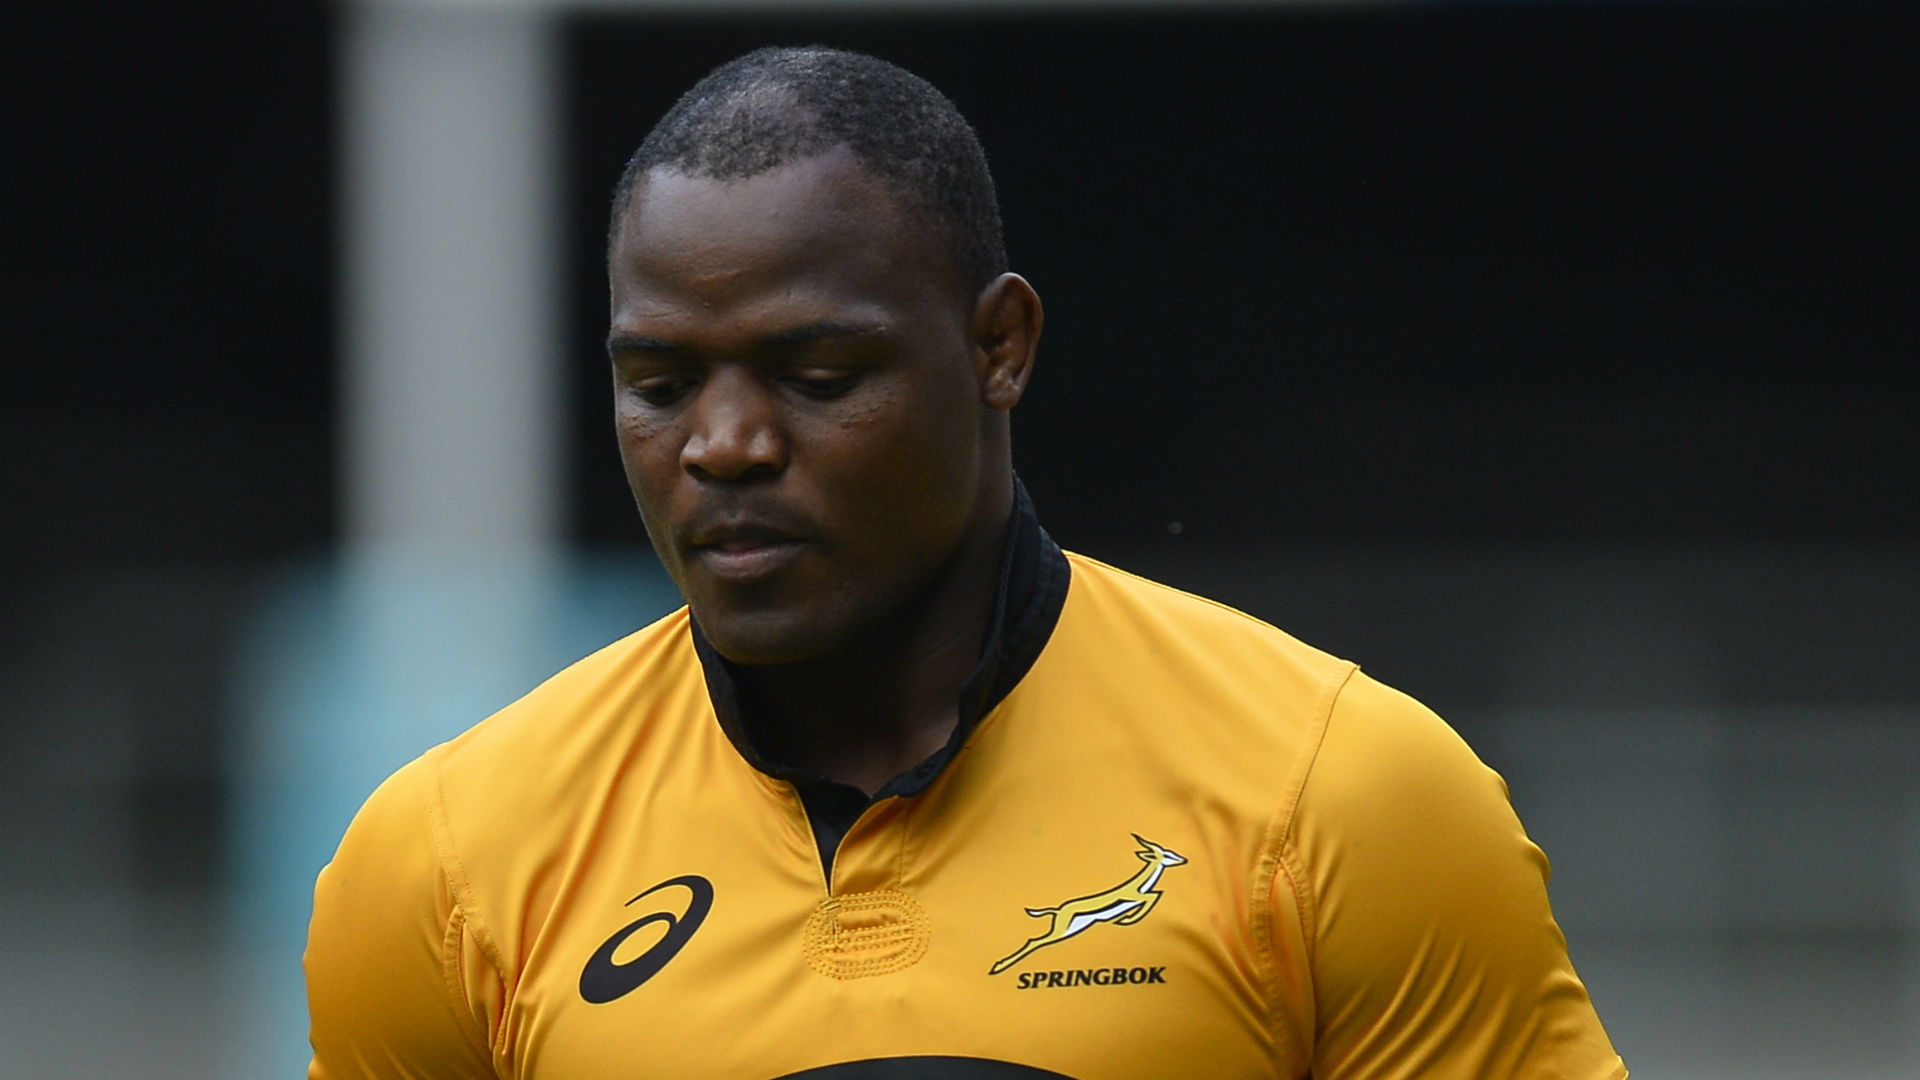 Chiliboy Ralepelle's playing days could be over after he was handed a lengthy ban following a positive test for anabolic agent Zeranol.